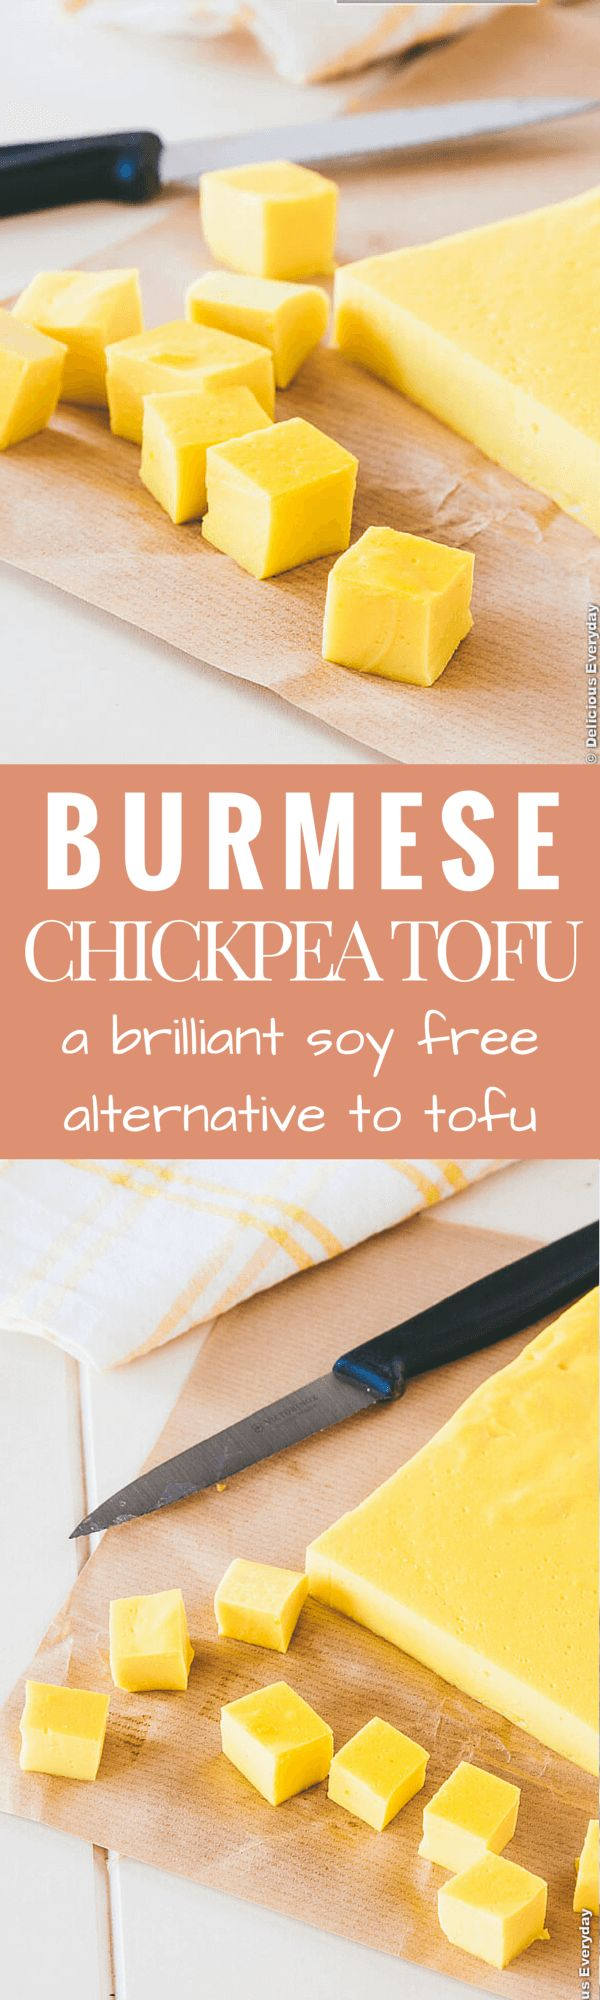 Looking for a soy free alternative to tofu? This Burmese Chickpea Tofu is easy to make and is a healthy and delicious source of protein. Great in salads, stir fries and soups.   Get the recipe at Delicious Everyday